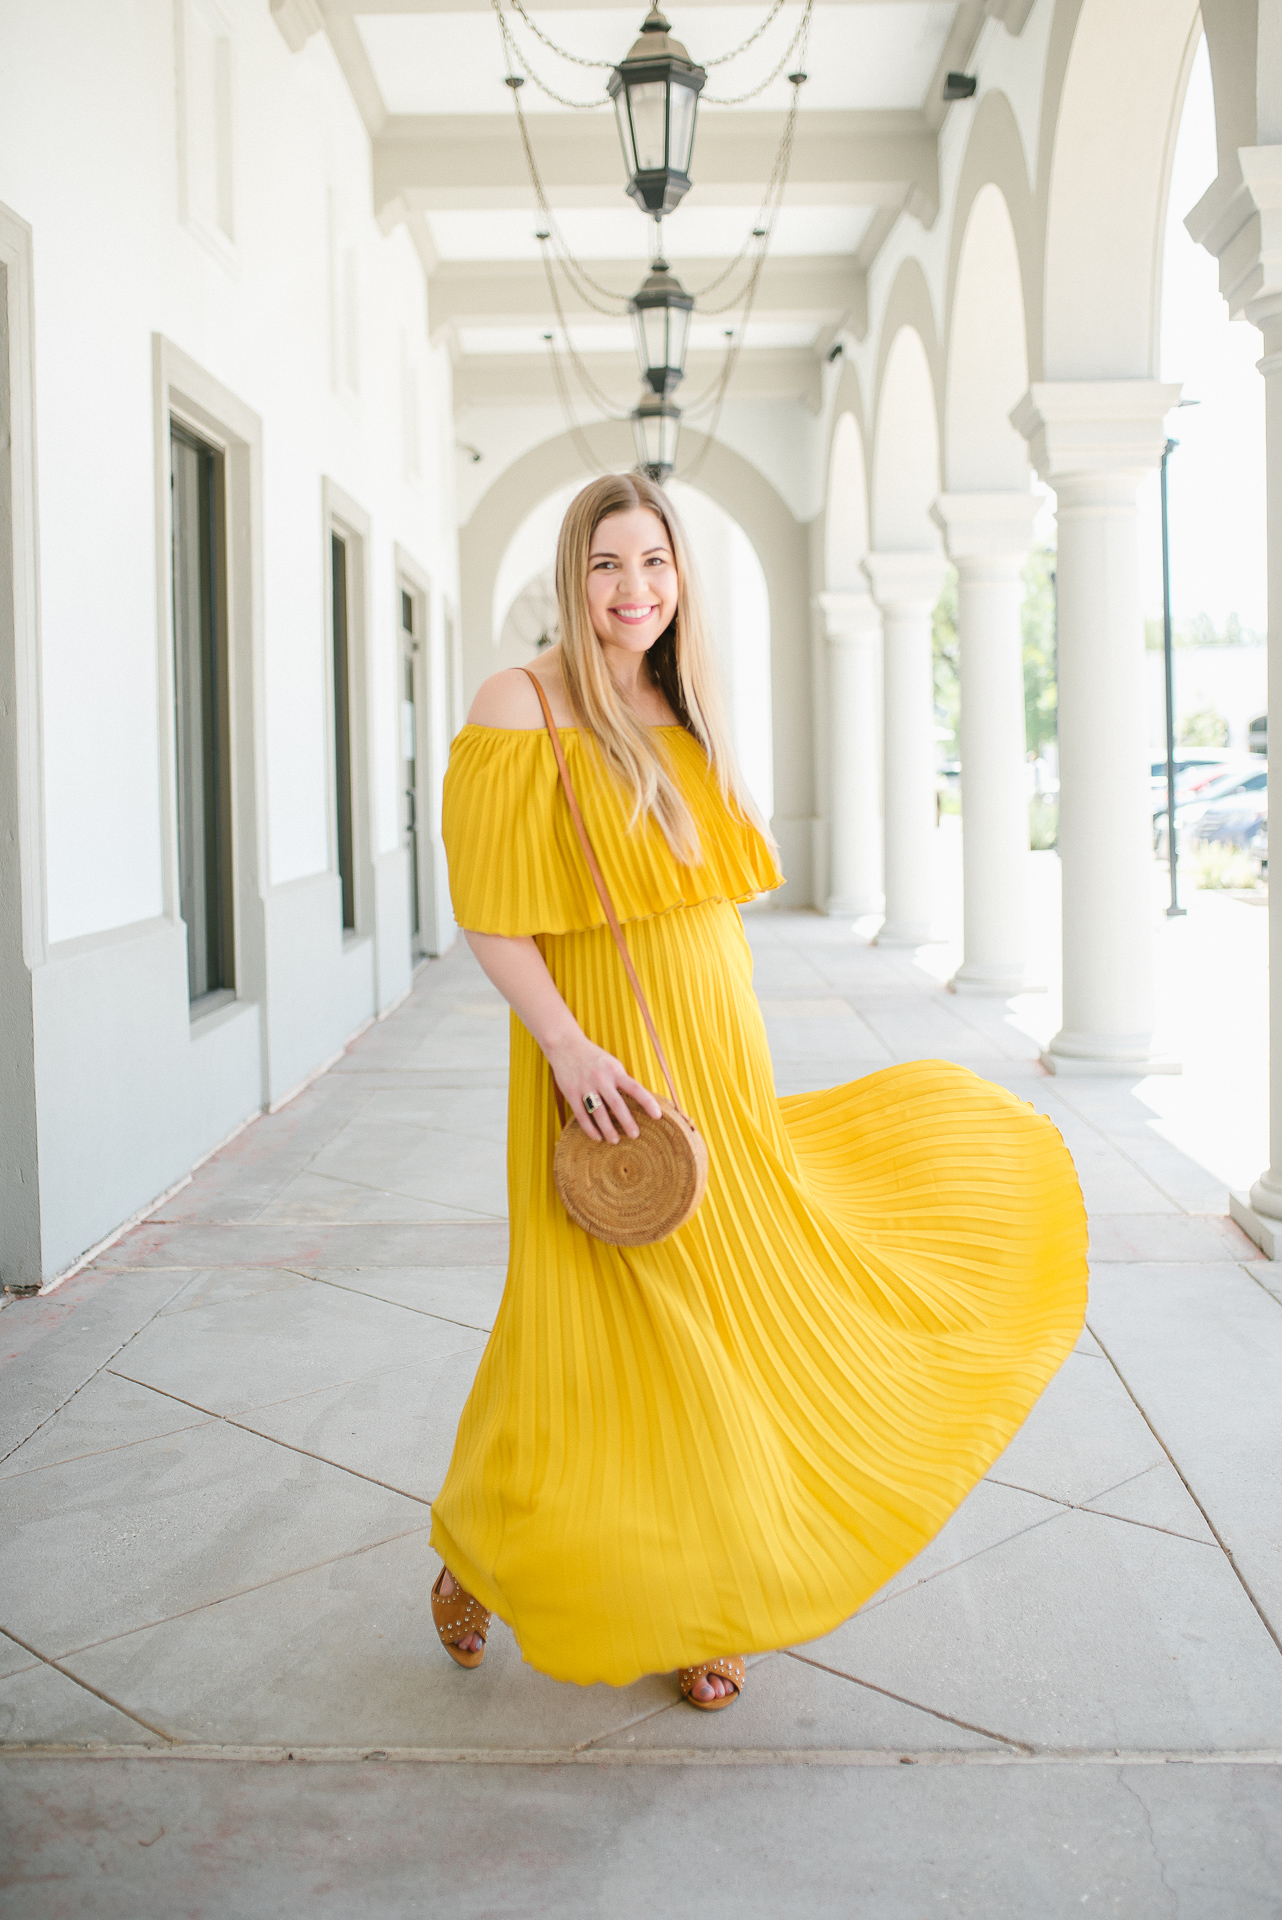 8 Amazing Dresses for Summer Travel - Yellow Pleated Maxi Dress worn by Cup of Charisma Jillian Goltzman Houston Fashion Blogger 1